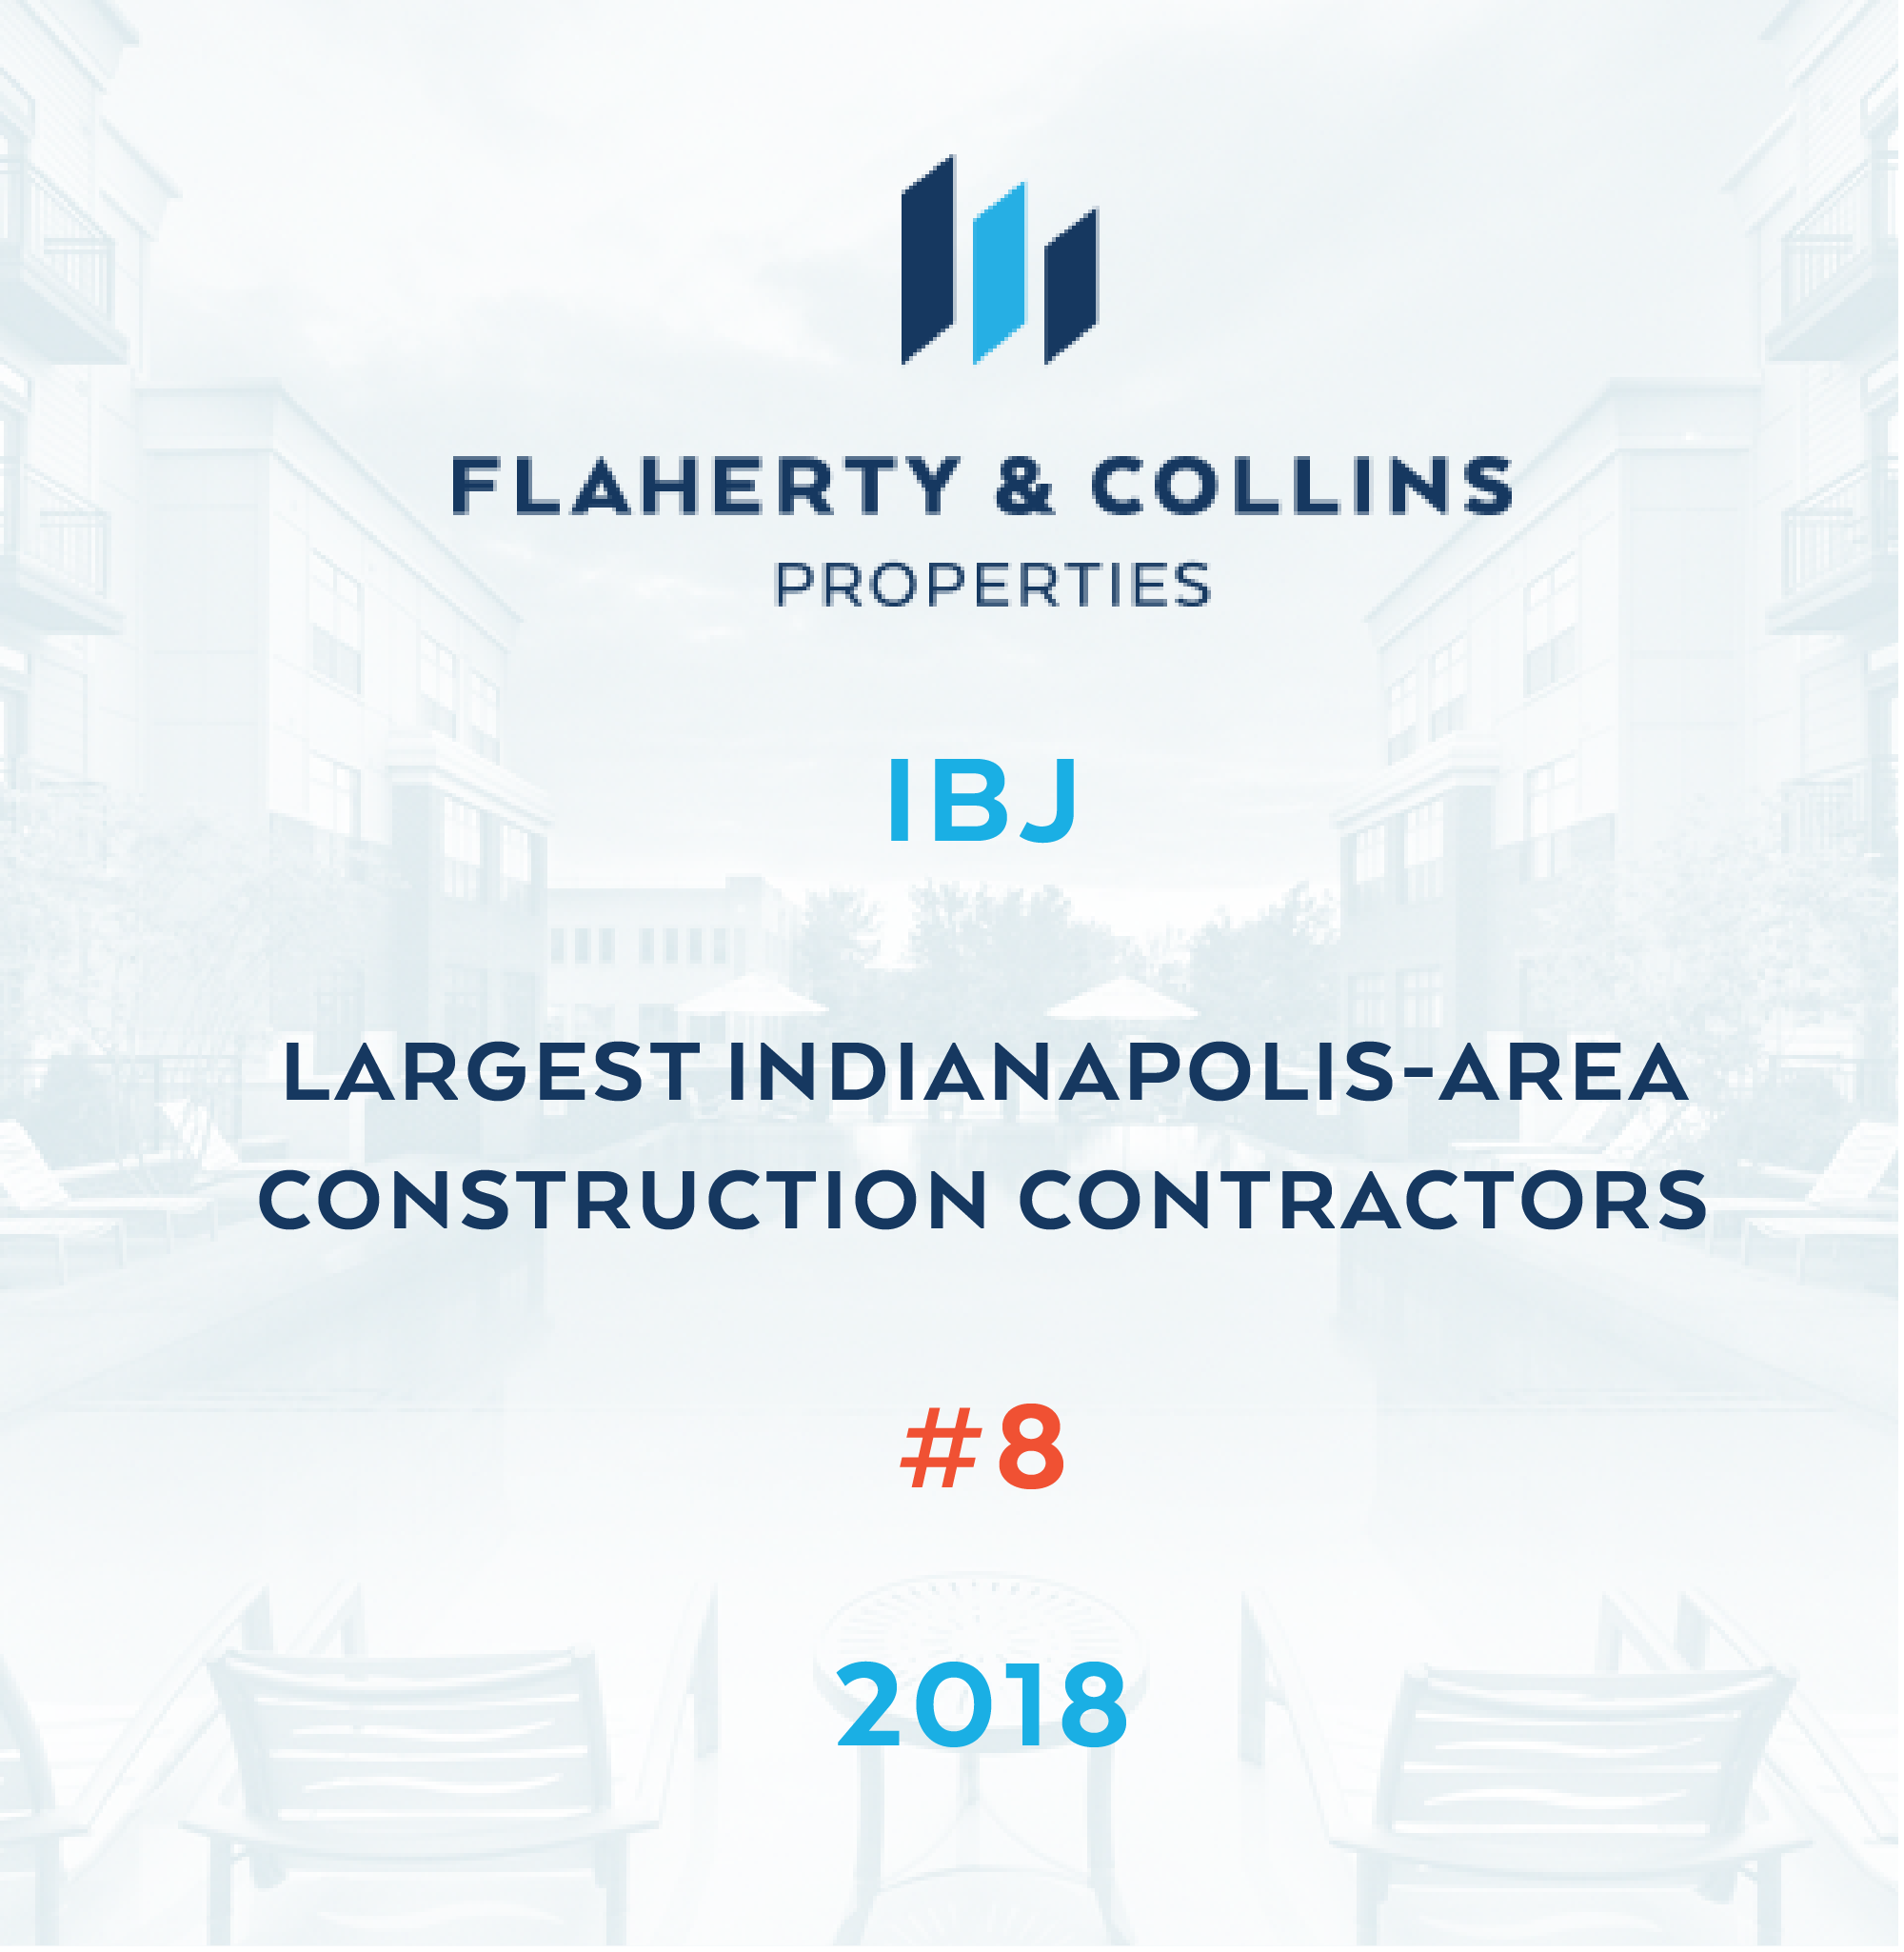 Largest Indianapolis-Area Construction Contractors